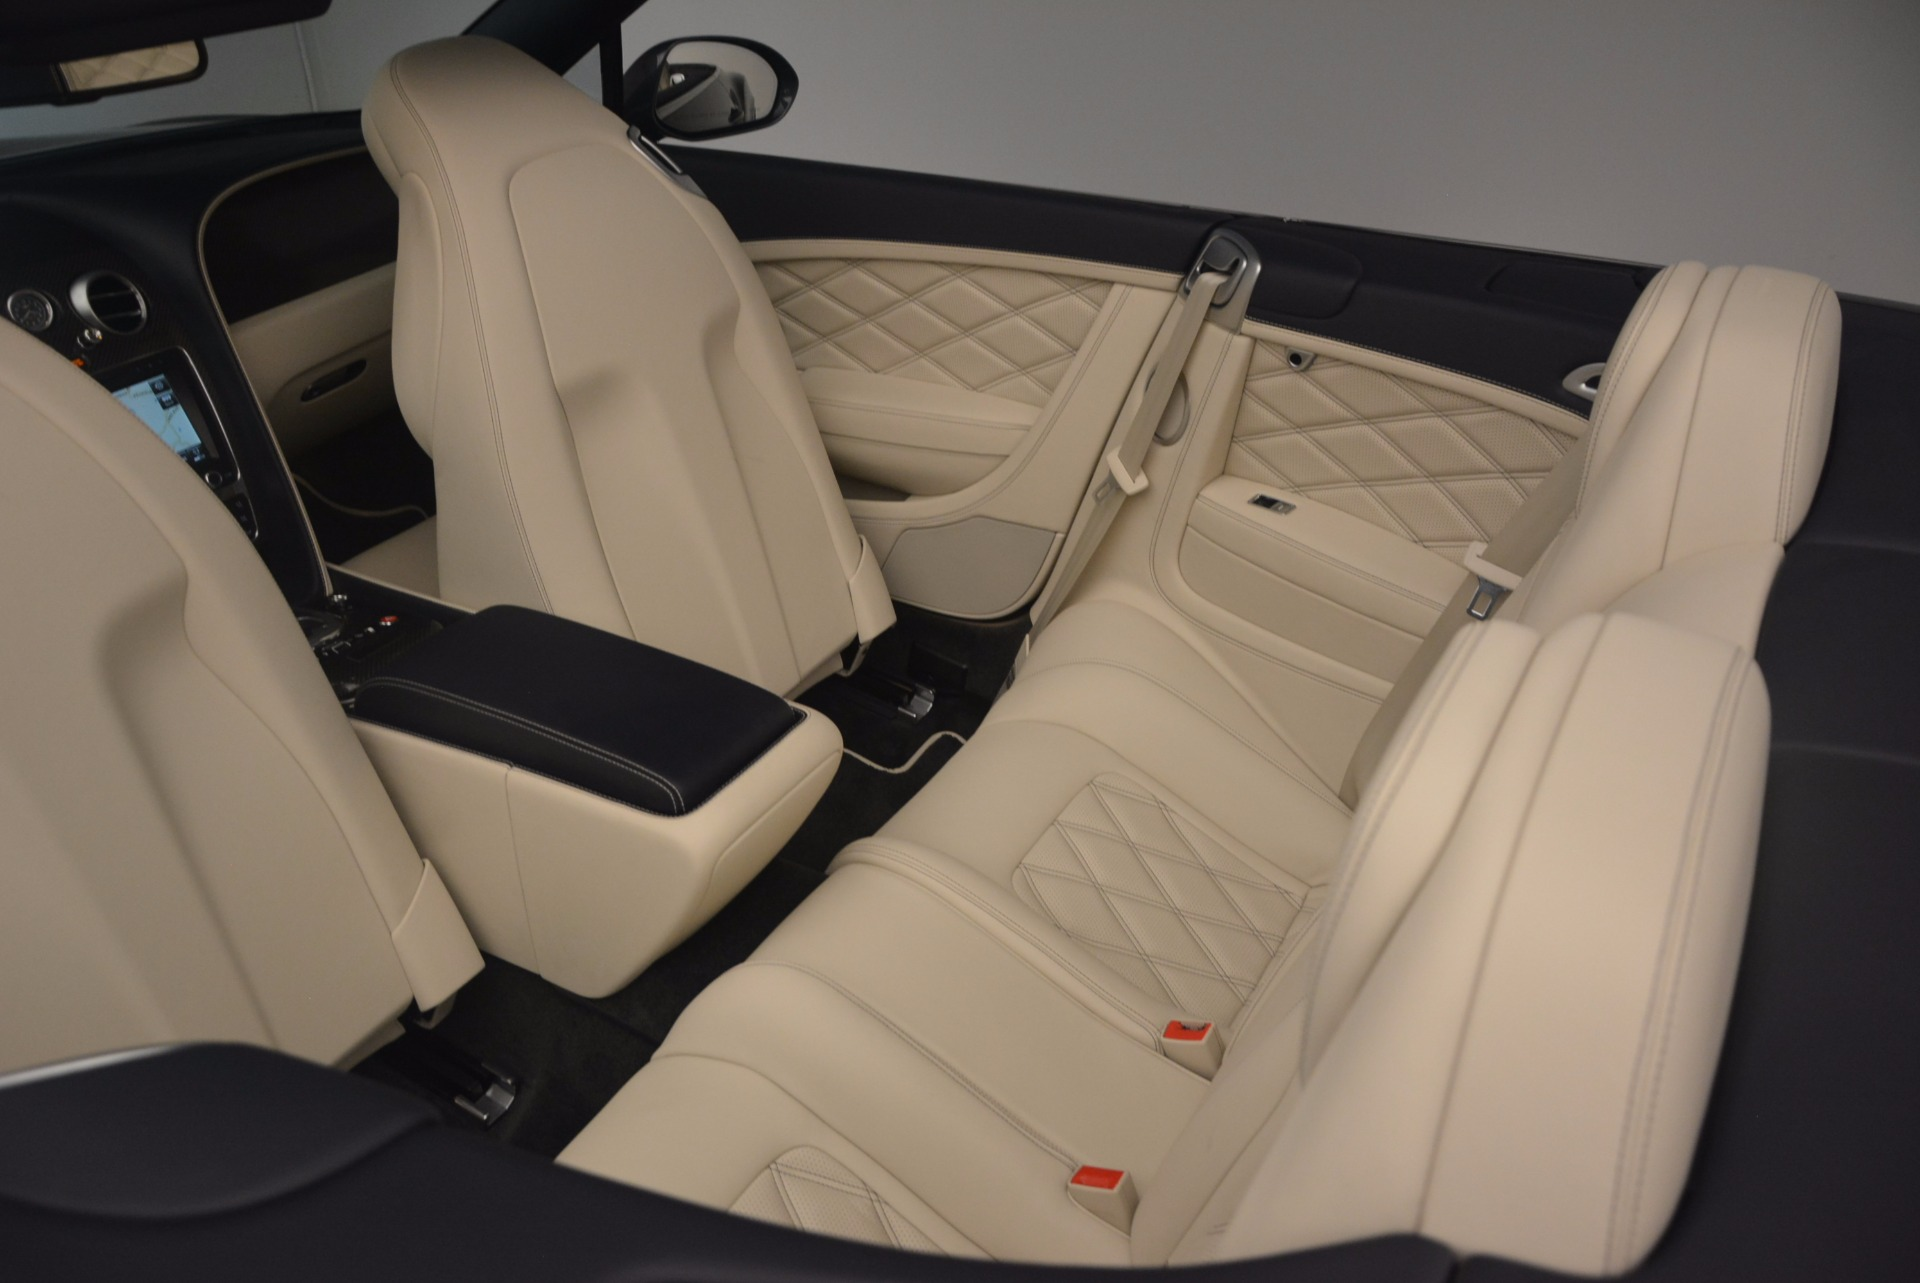 Used 2013 Bentley Continental GT V8 Le Mans Edition, 1 of 48 For Sale In Westport, CT 1288_p47